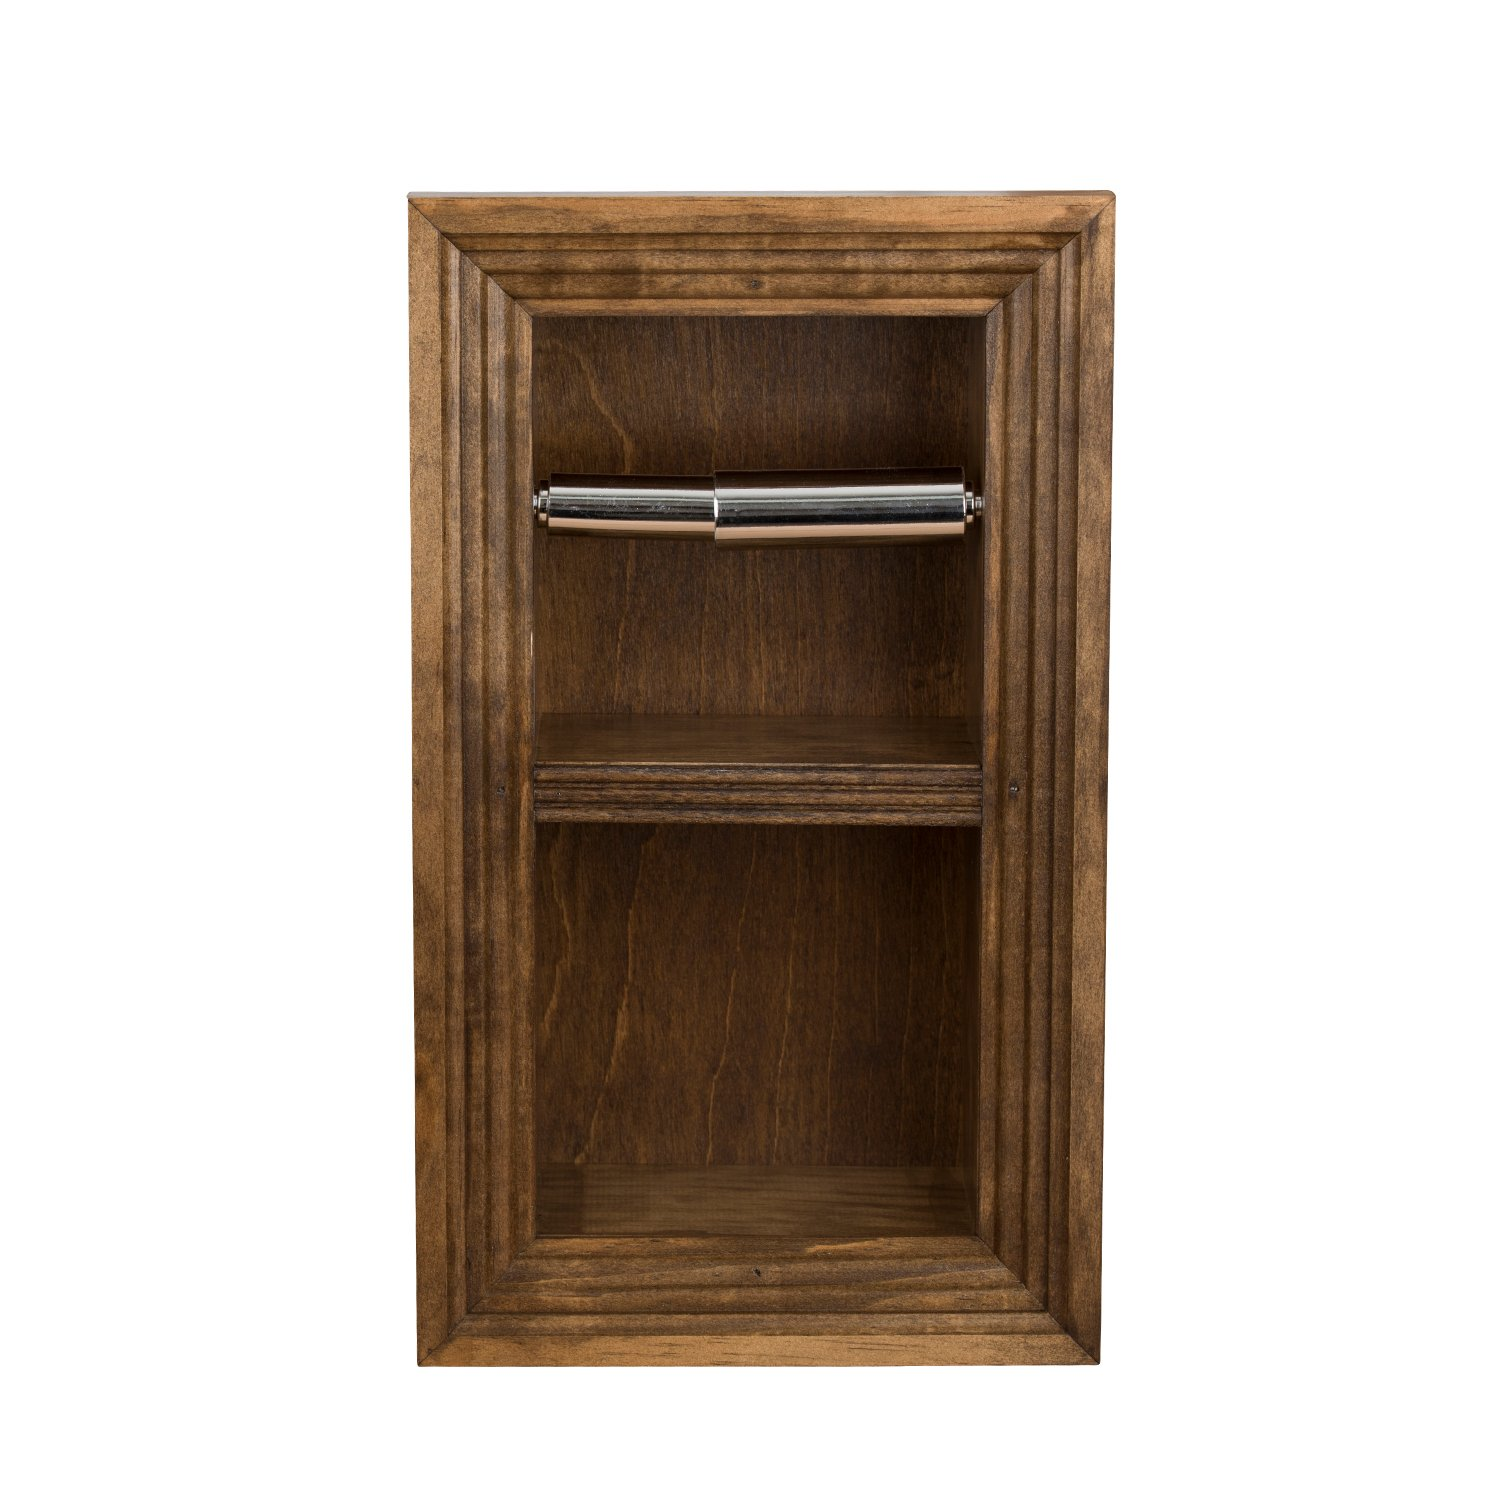 Florida Breeze Cabinets Zephyr Recessed Toilet Paper Holder with Spare Roll, Medium Brown